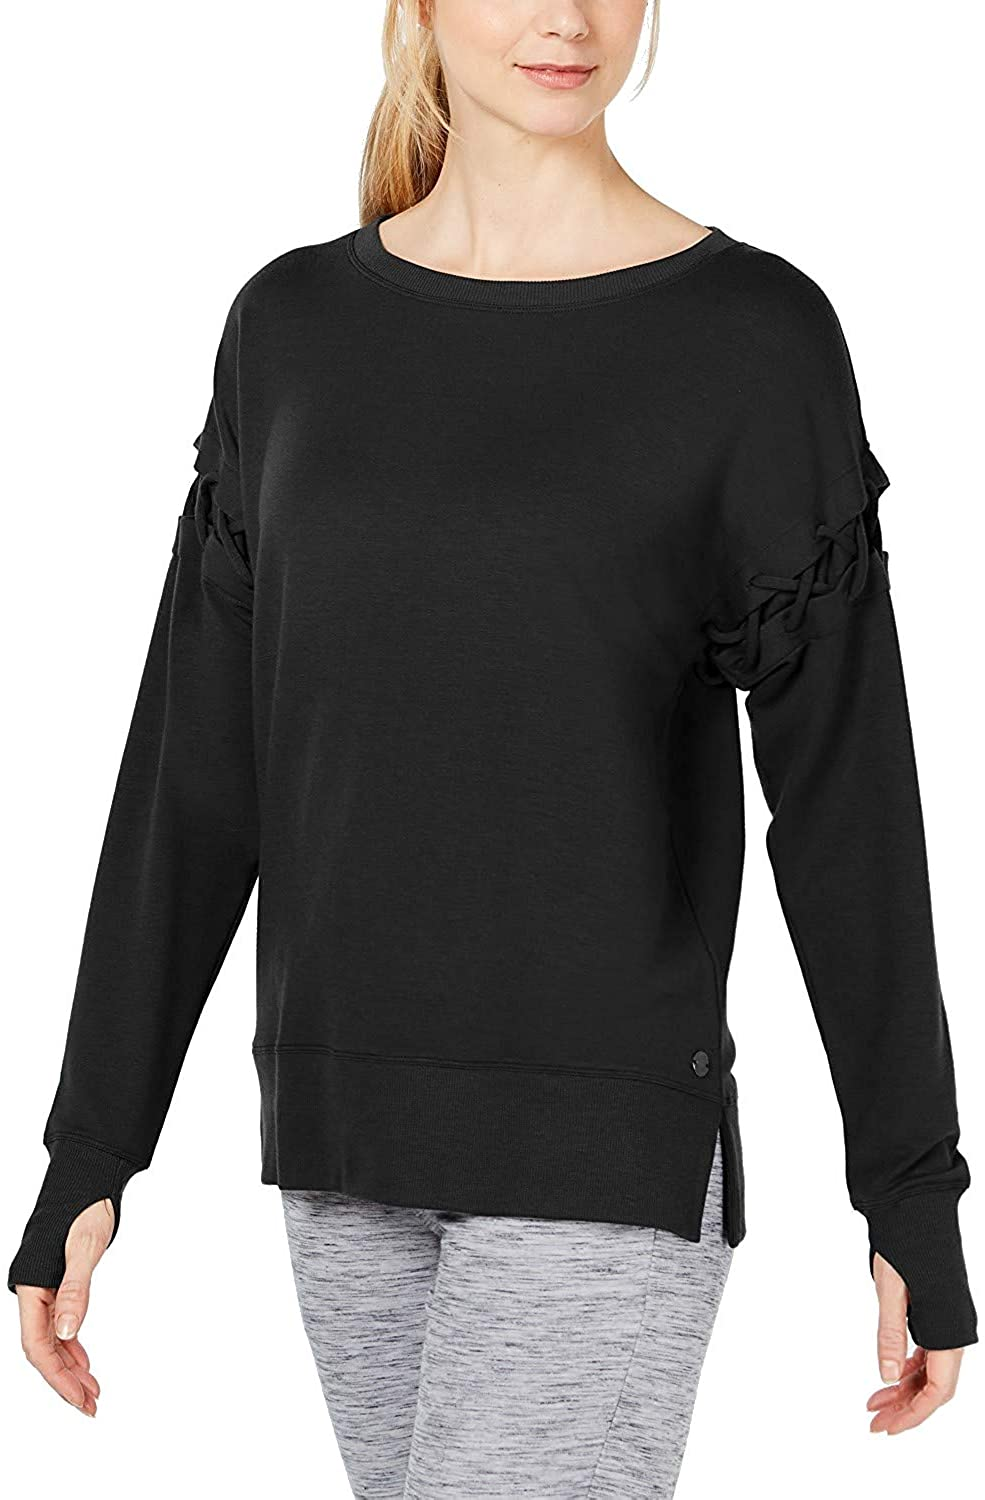 Ideology Women's Criss-Cross-Sleeve Top Noir 2XL